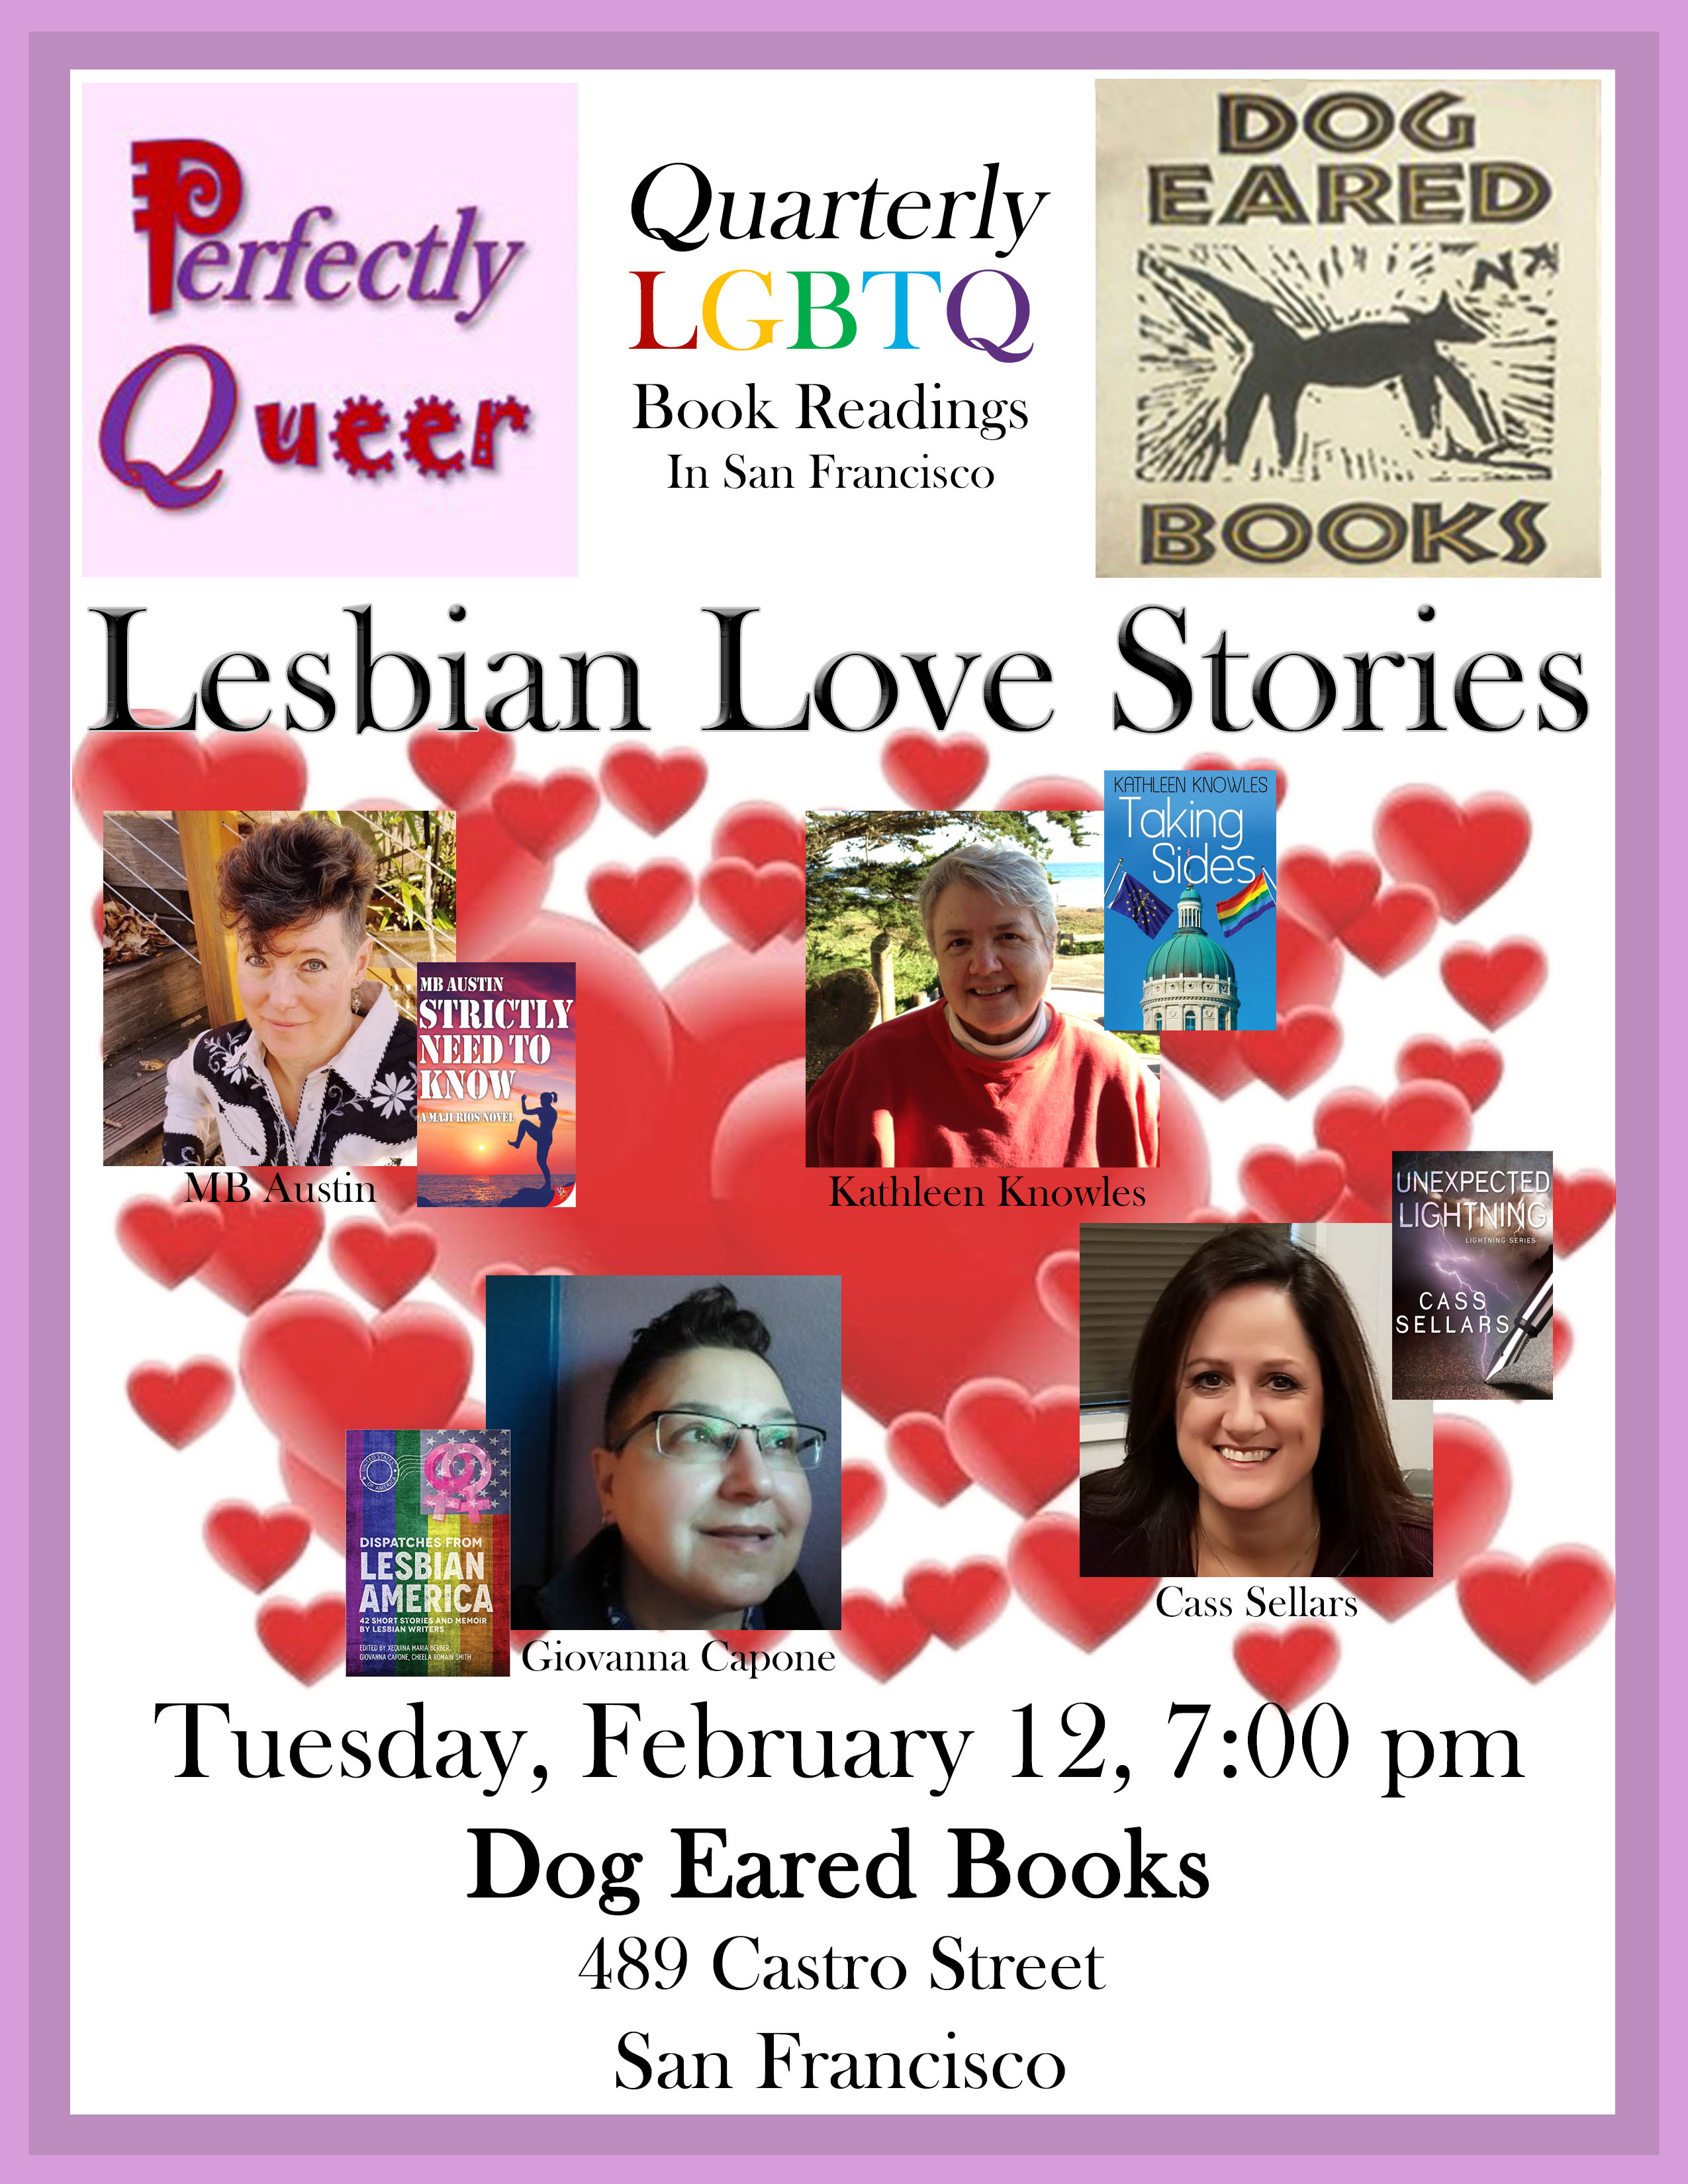 MB Austin, Giovanna Capone, Kathy Knowles, and Cass Sellars read love  stories from their work at Perfectly Queer San Francisco, Tuesday, February  12, ...